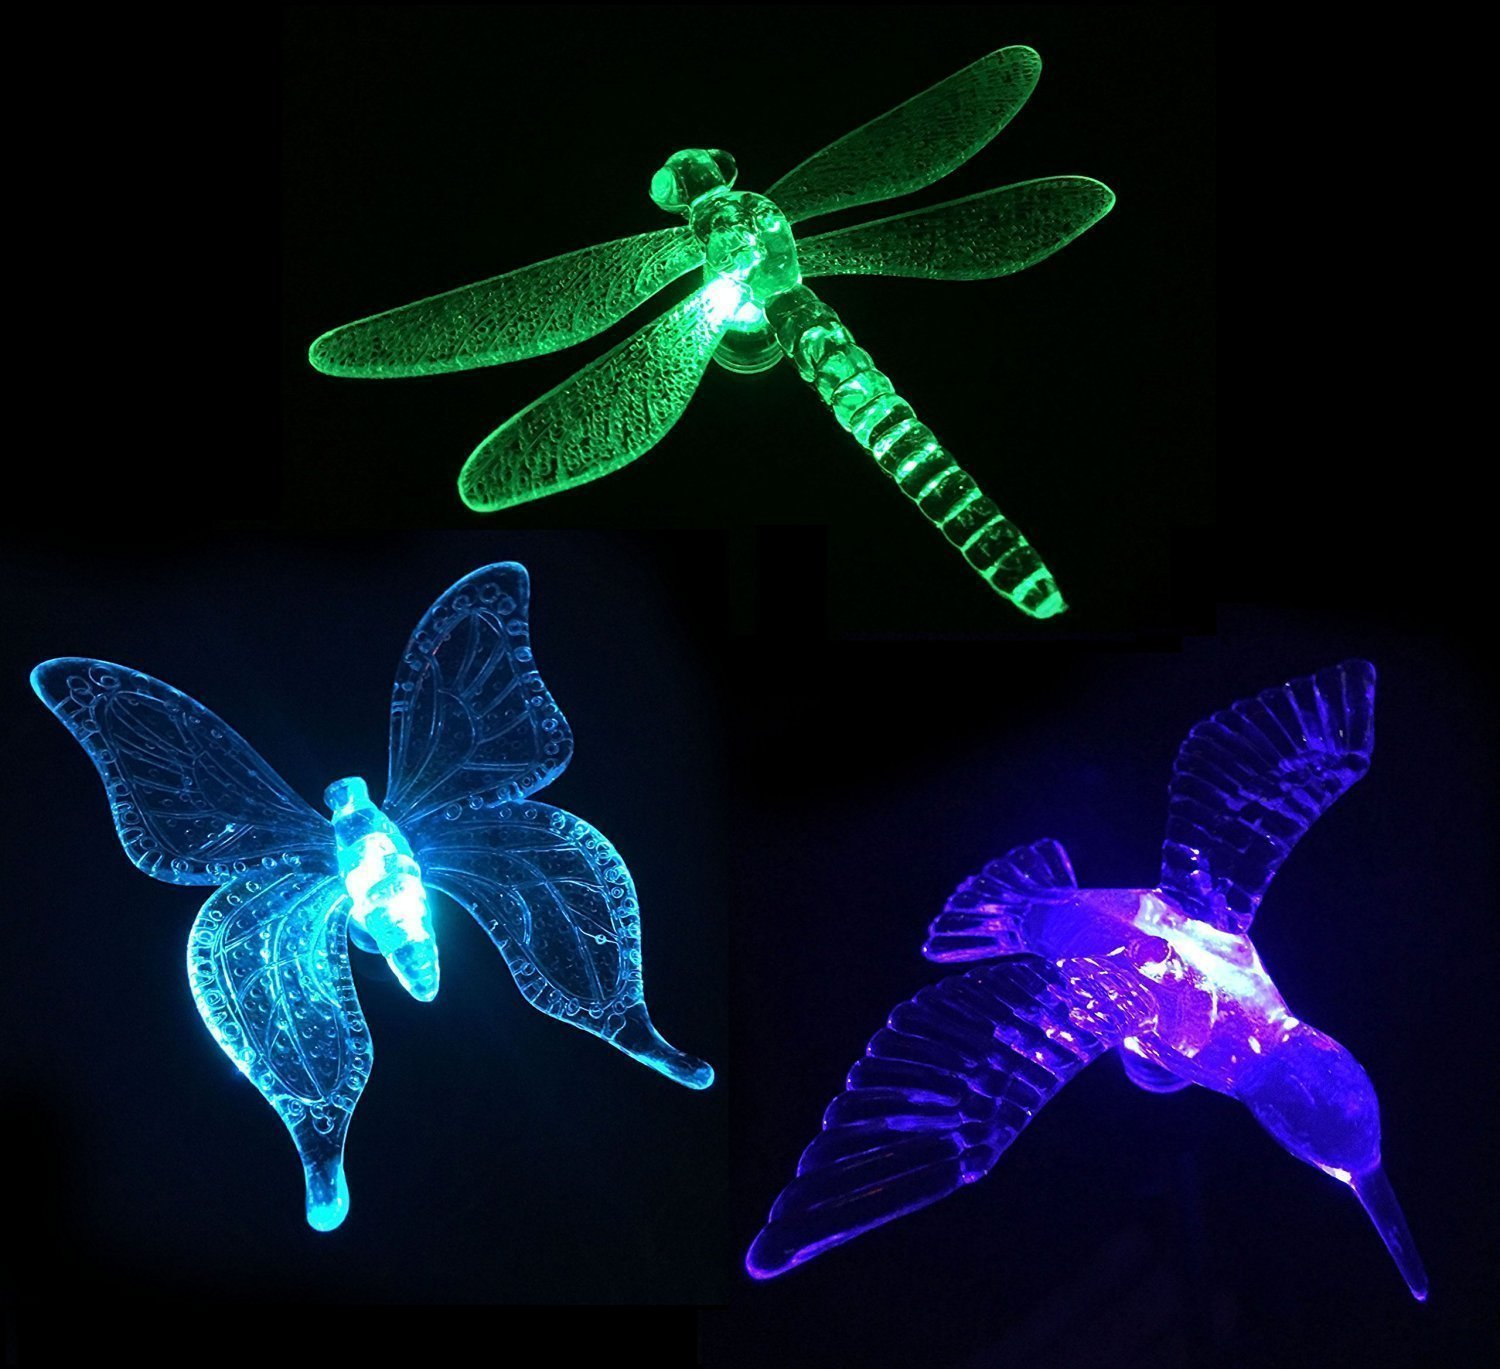 Fashionlite Solar Powered Outdoor Hummingbird, Butterfly & Dragonfly Solar Garden Stake Light, Chameleon Multi-color Changing LED Light,3 pack by Fashionlite